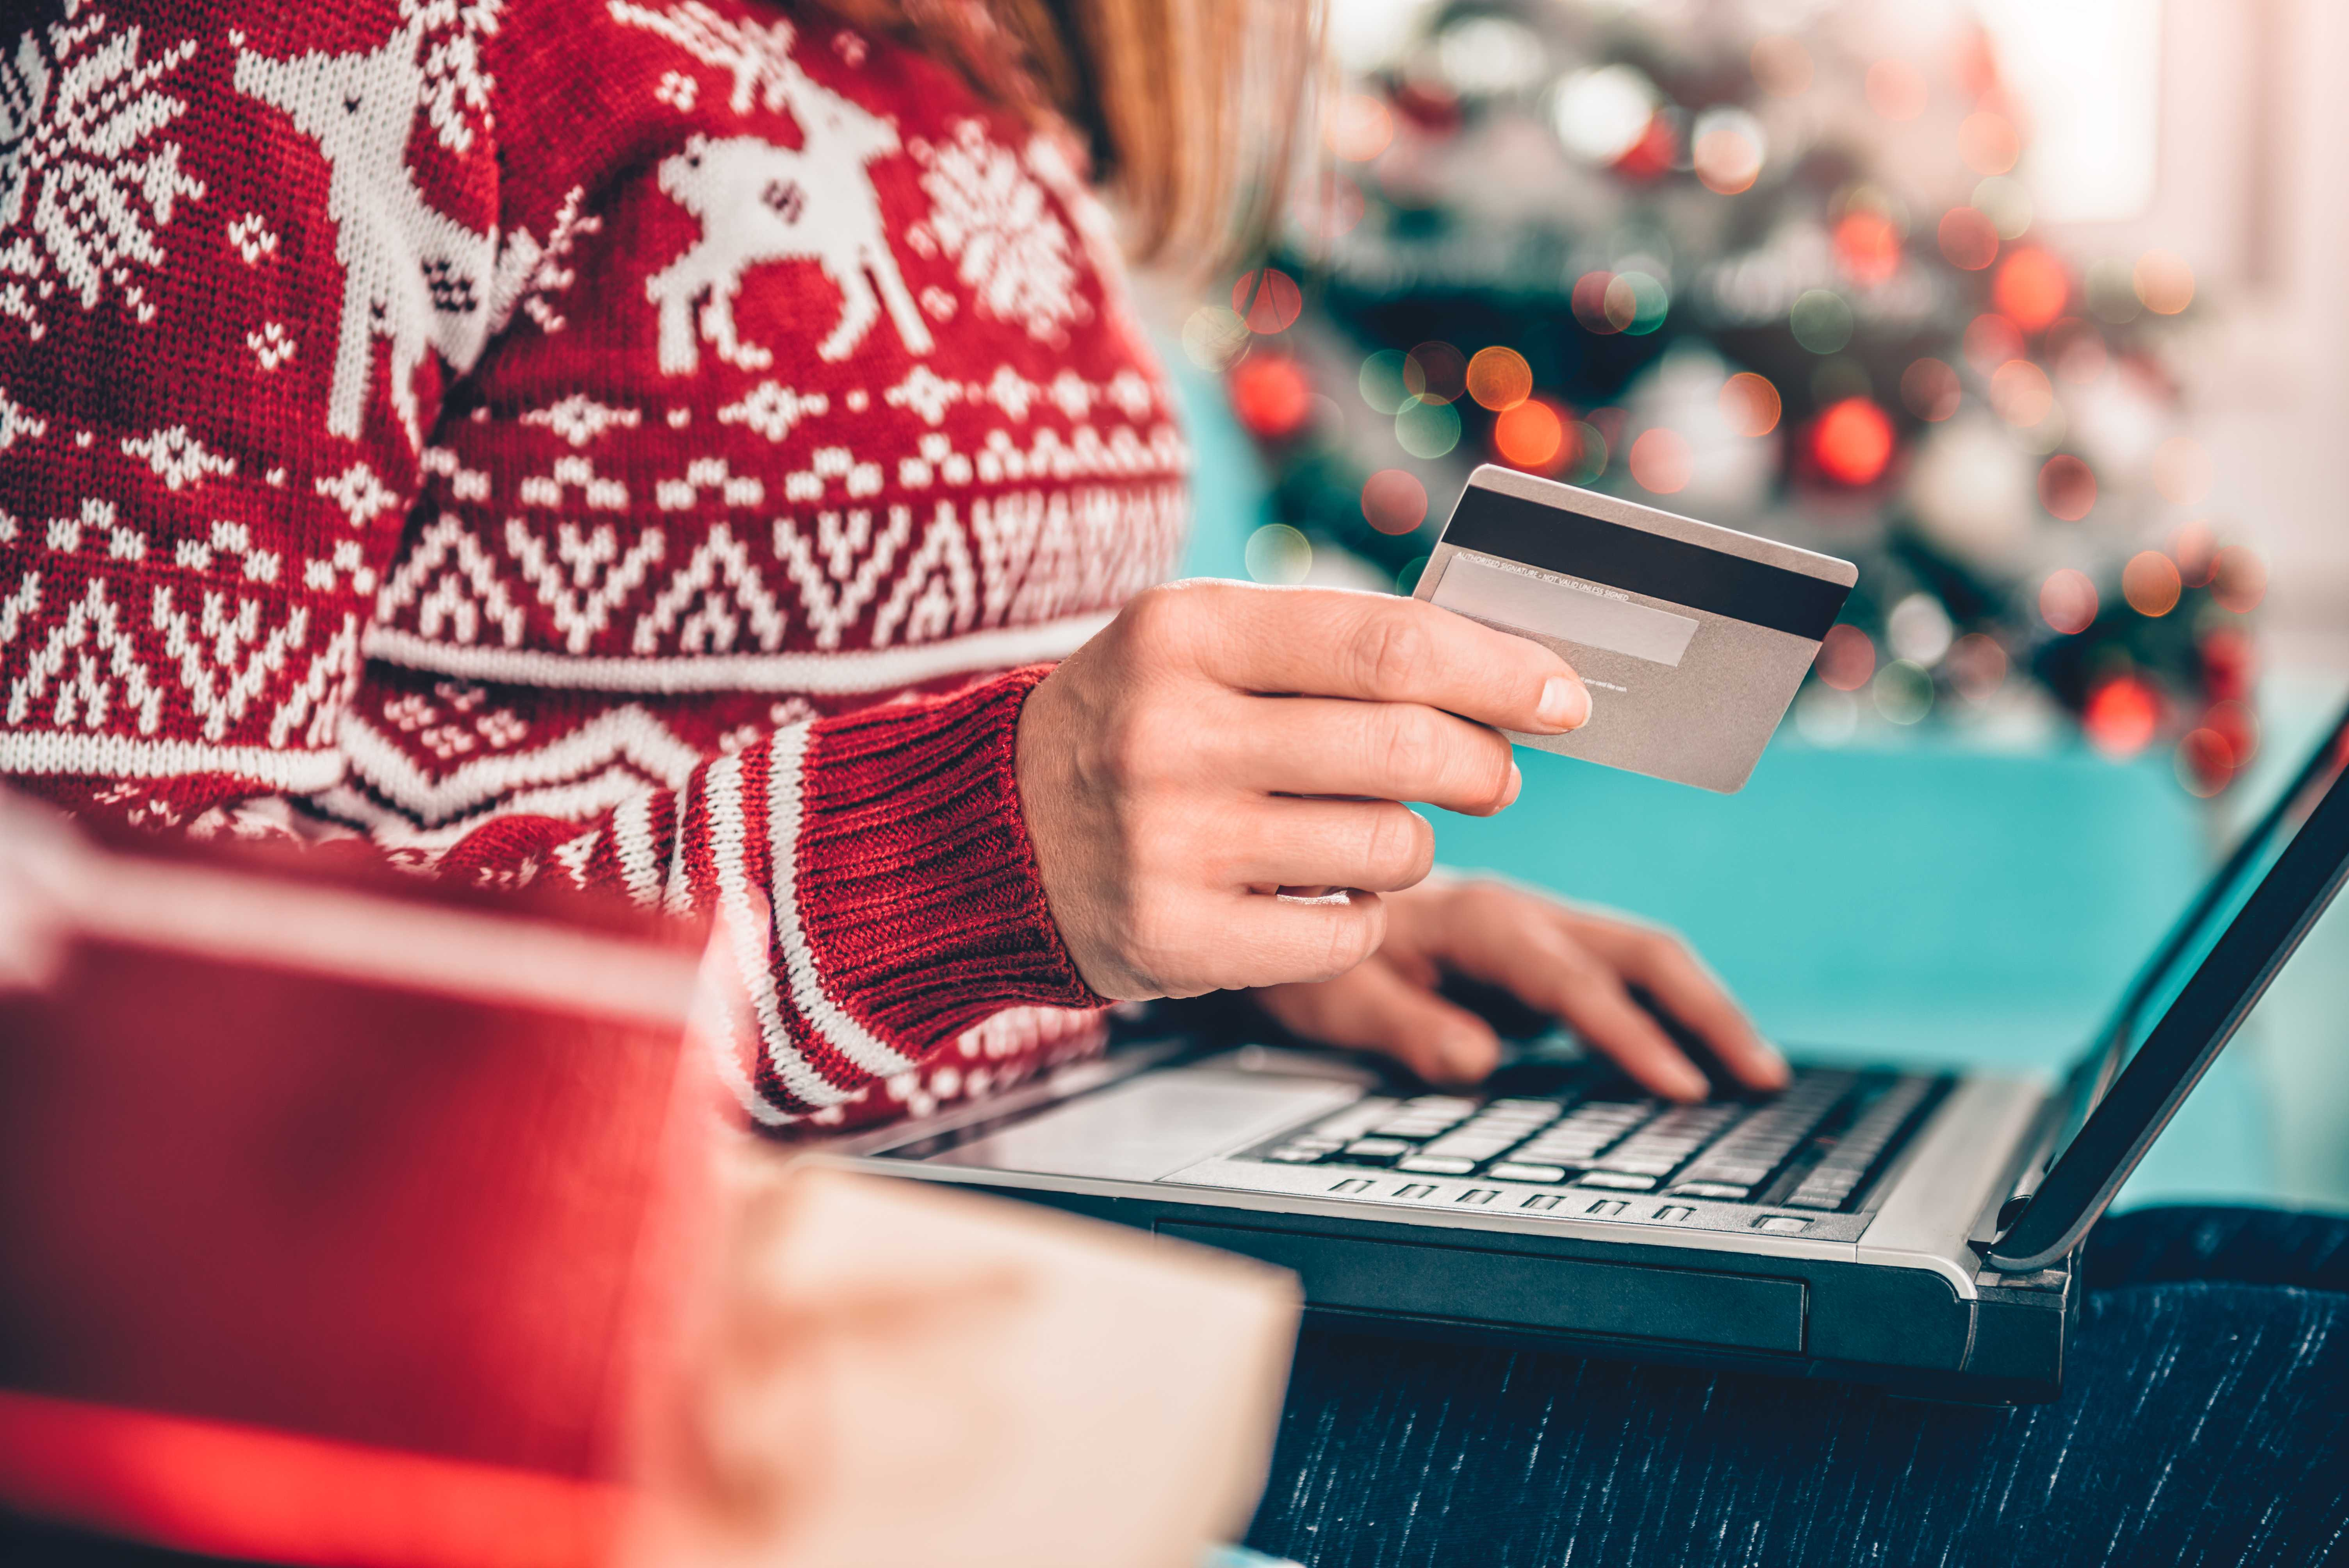 How to Protect Yourself from Holiday Scams